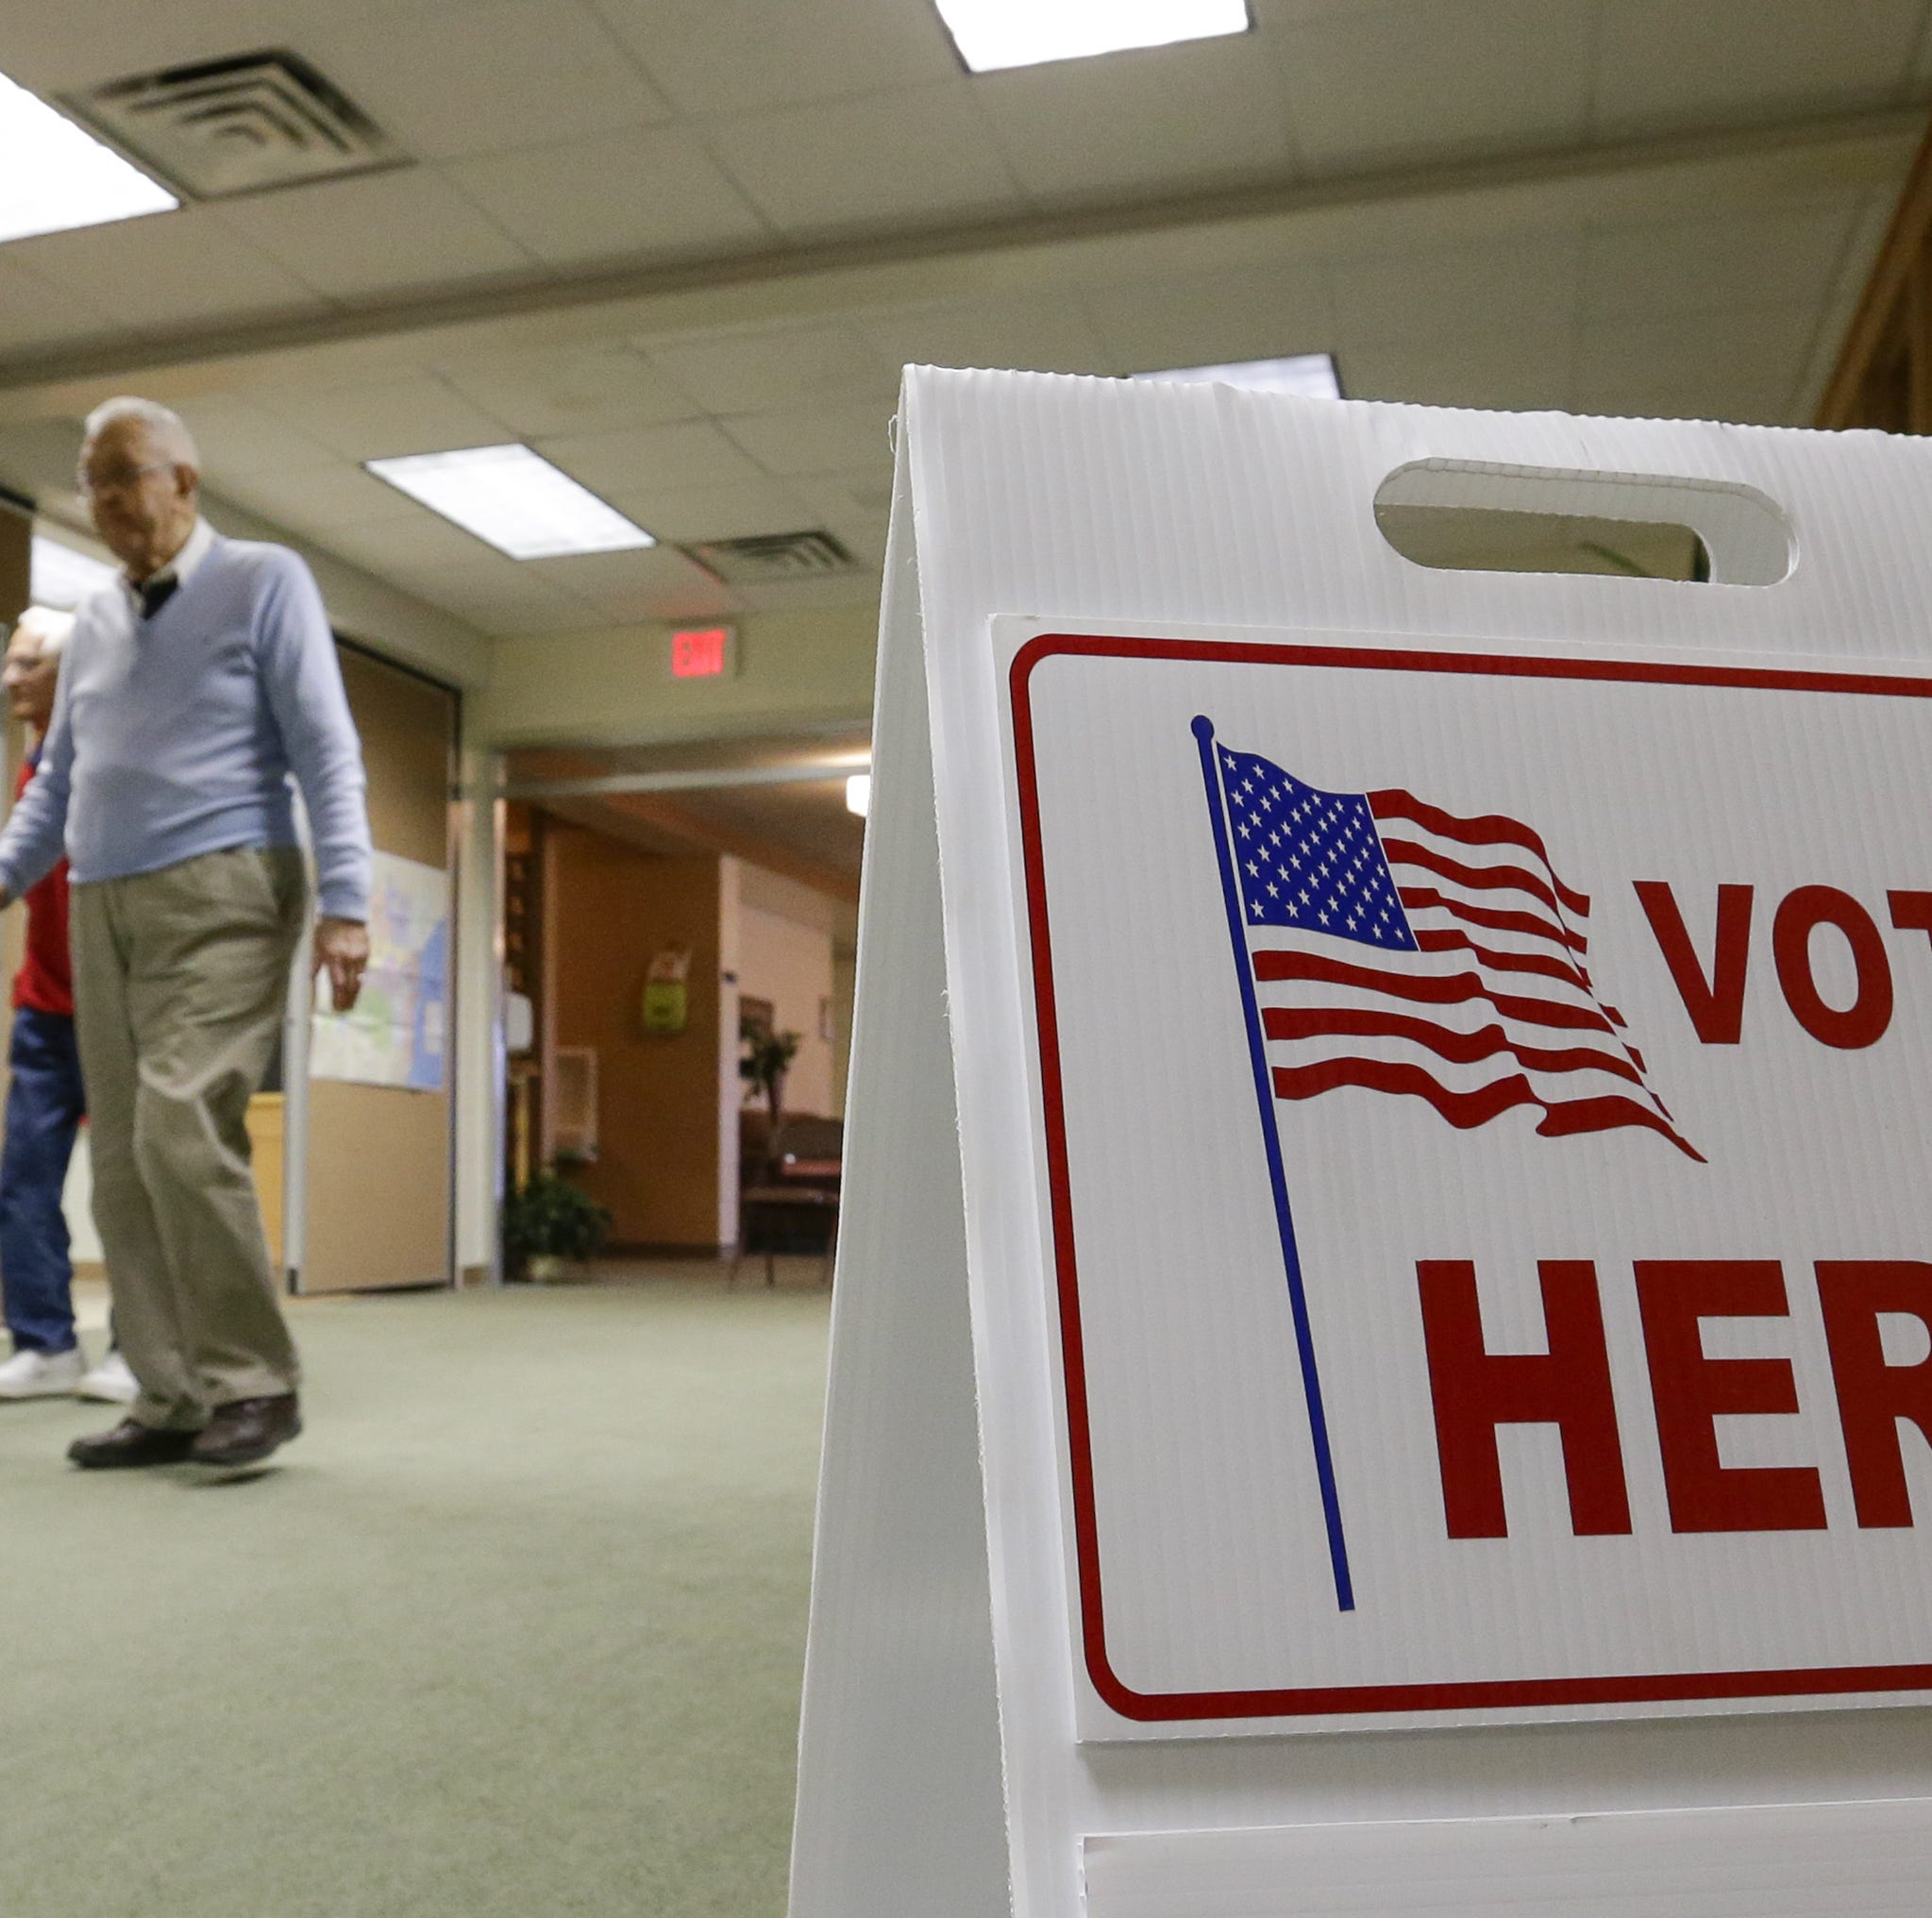 Manitowoc election: Everything you need to know, from who's on the ballot to where to vote